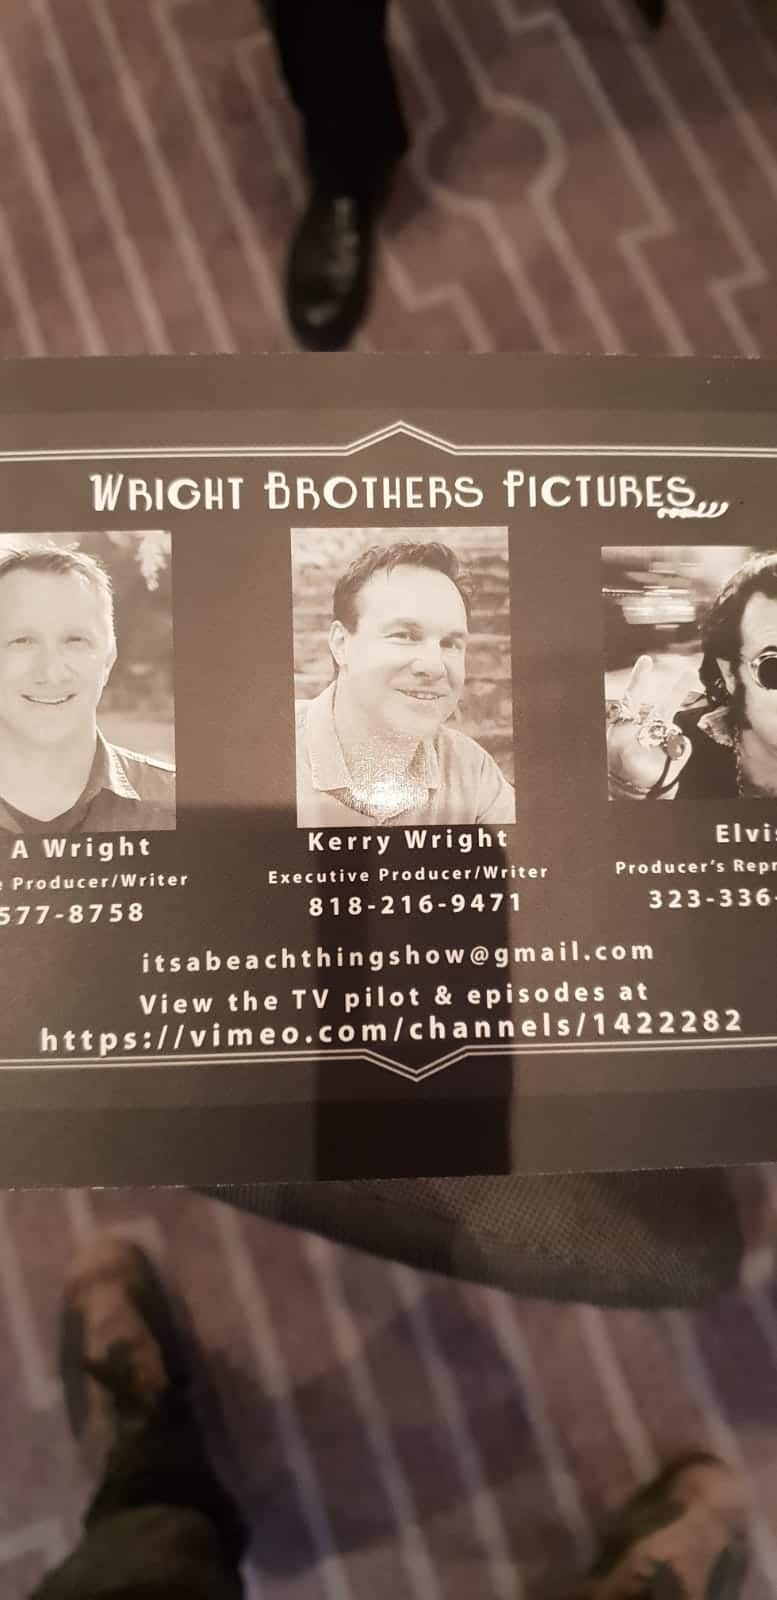 Wright Brothers Pictures